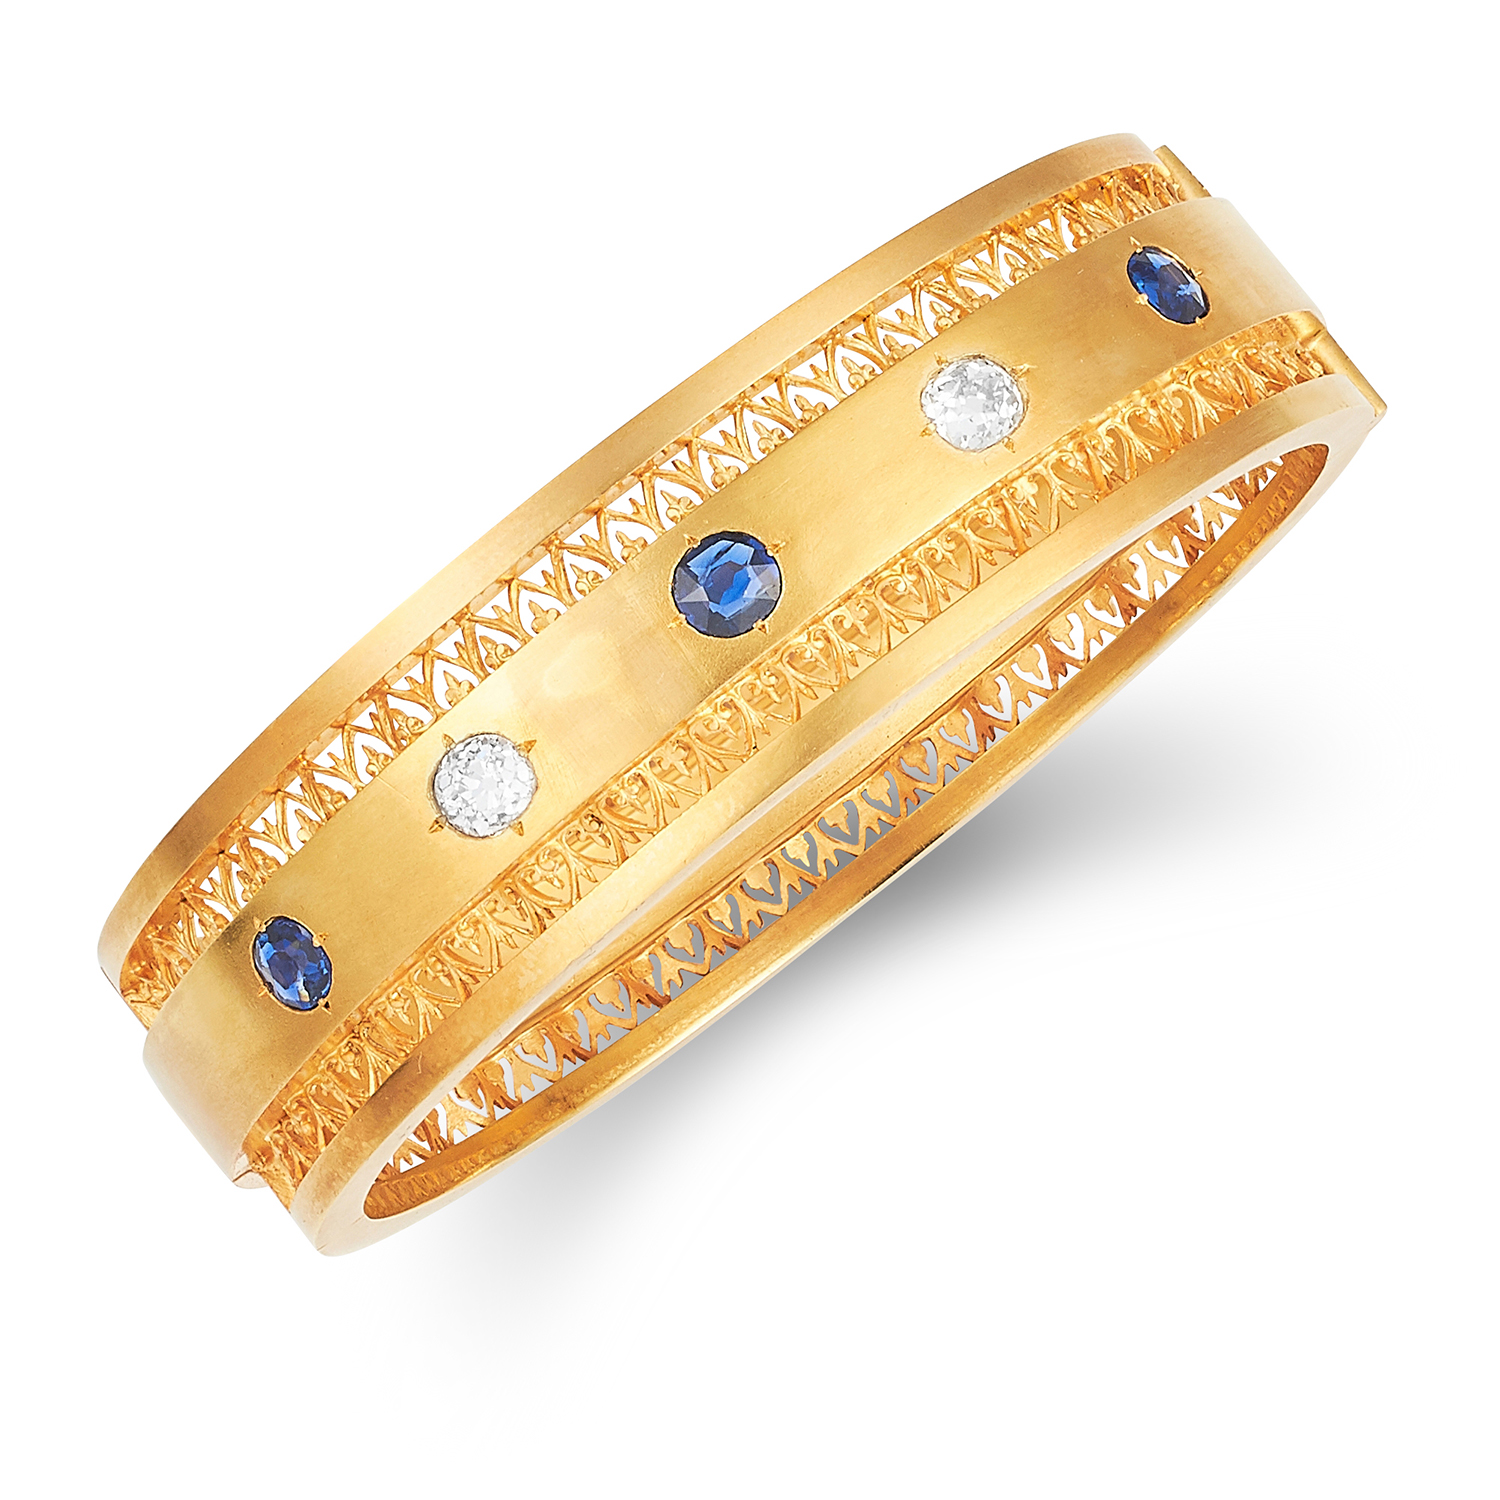 ANTIQUE VICTORIAN SAPPHIRE AND DIAMOND BANGLE in high carat yellow gold, in Etruscan revival form